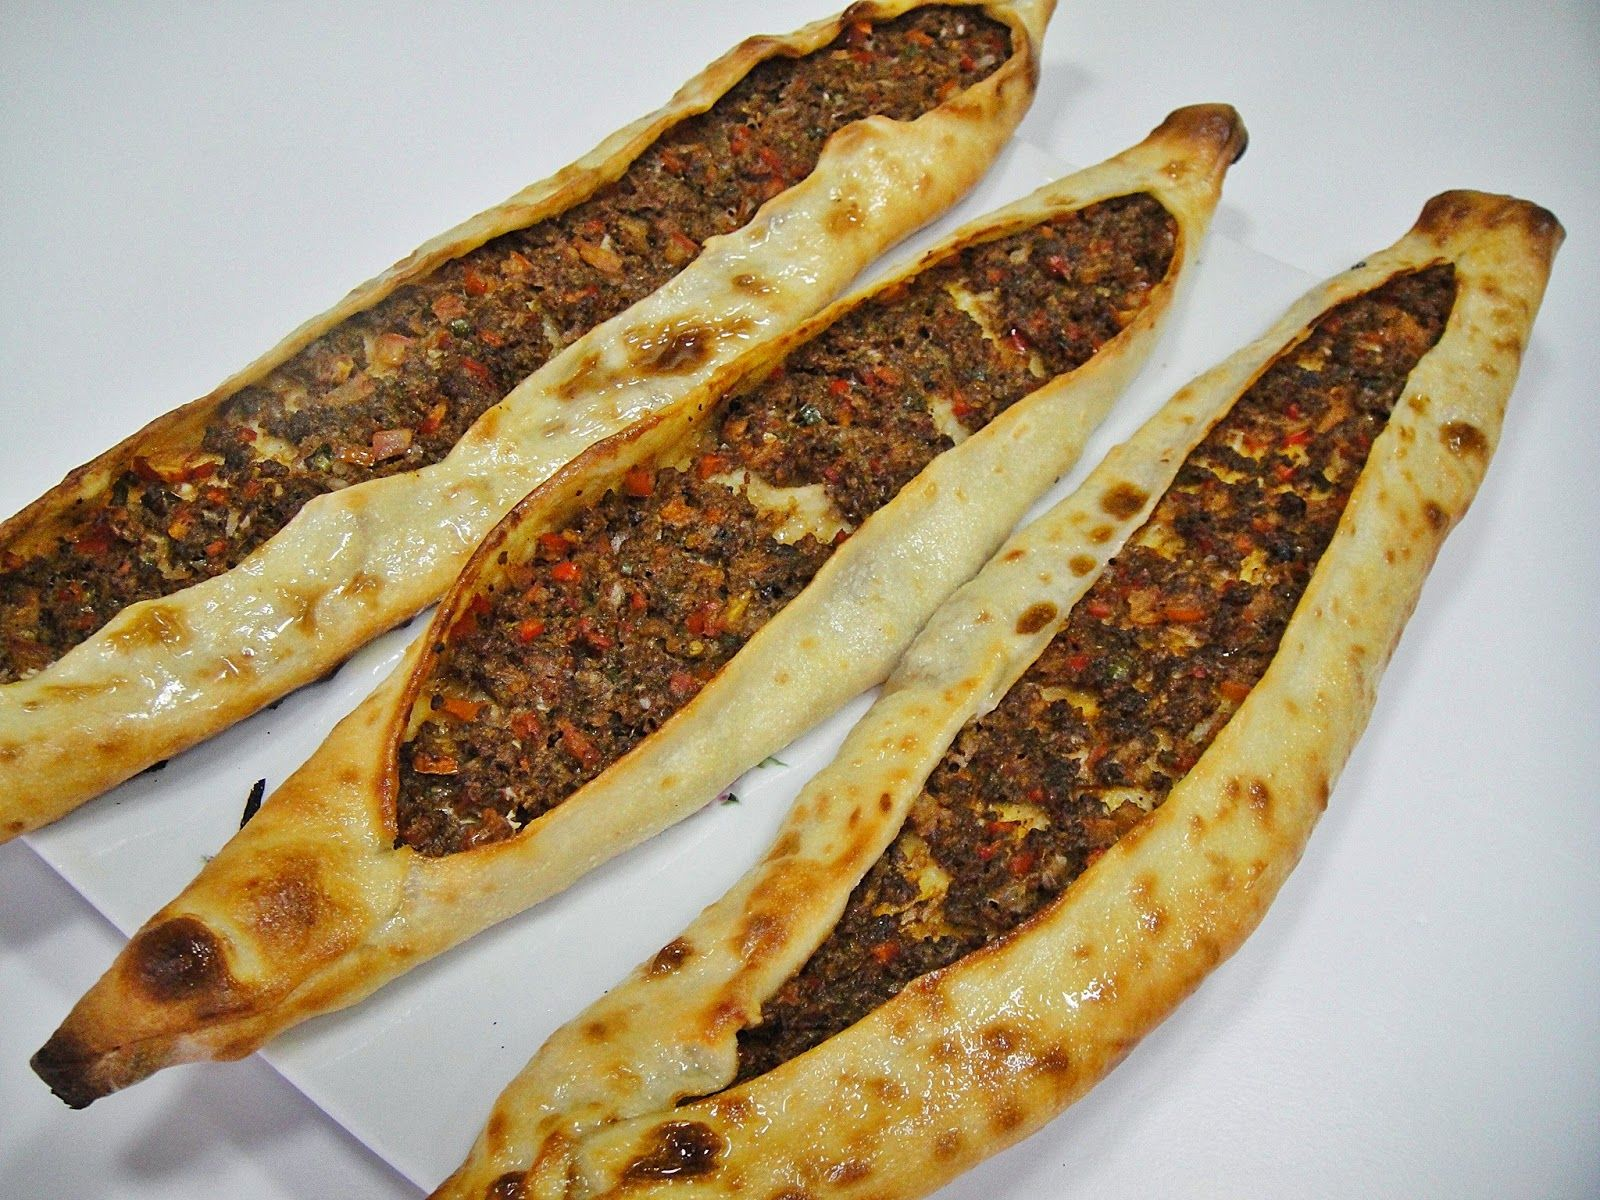 Maryams culinary wonders 664 lamb pide middle eastern recipes its no secret turkish food is among the absolute best in the world along with iraqi food of course forumfinder Images